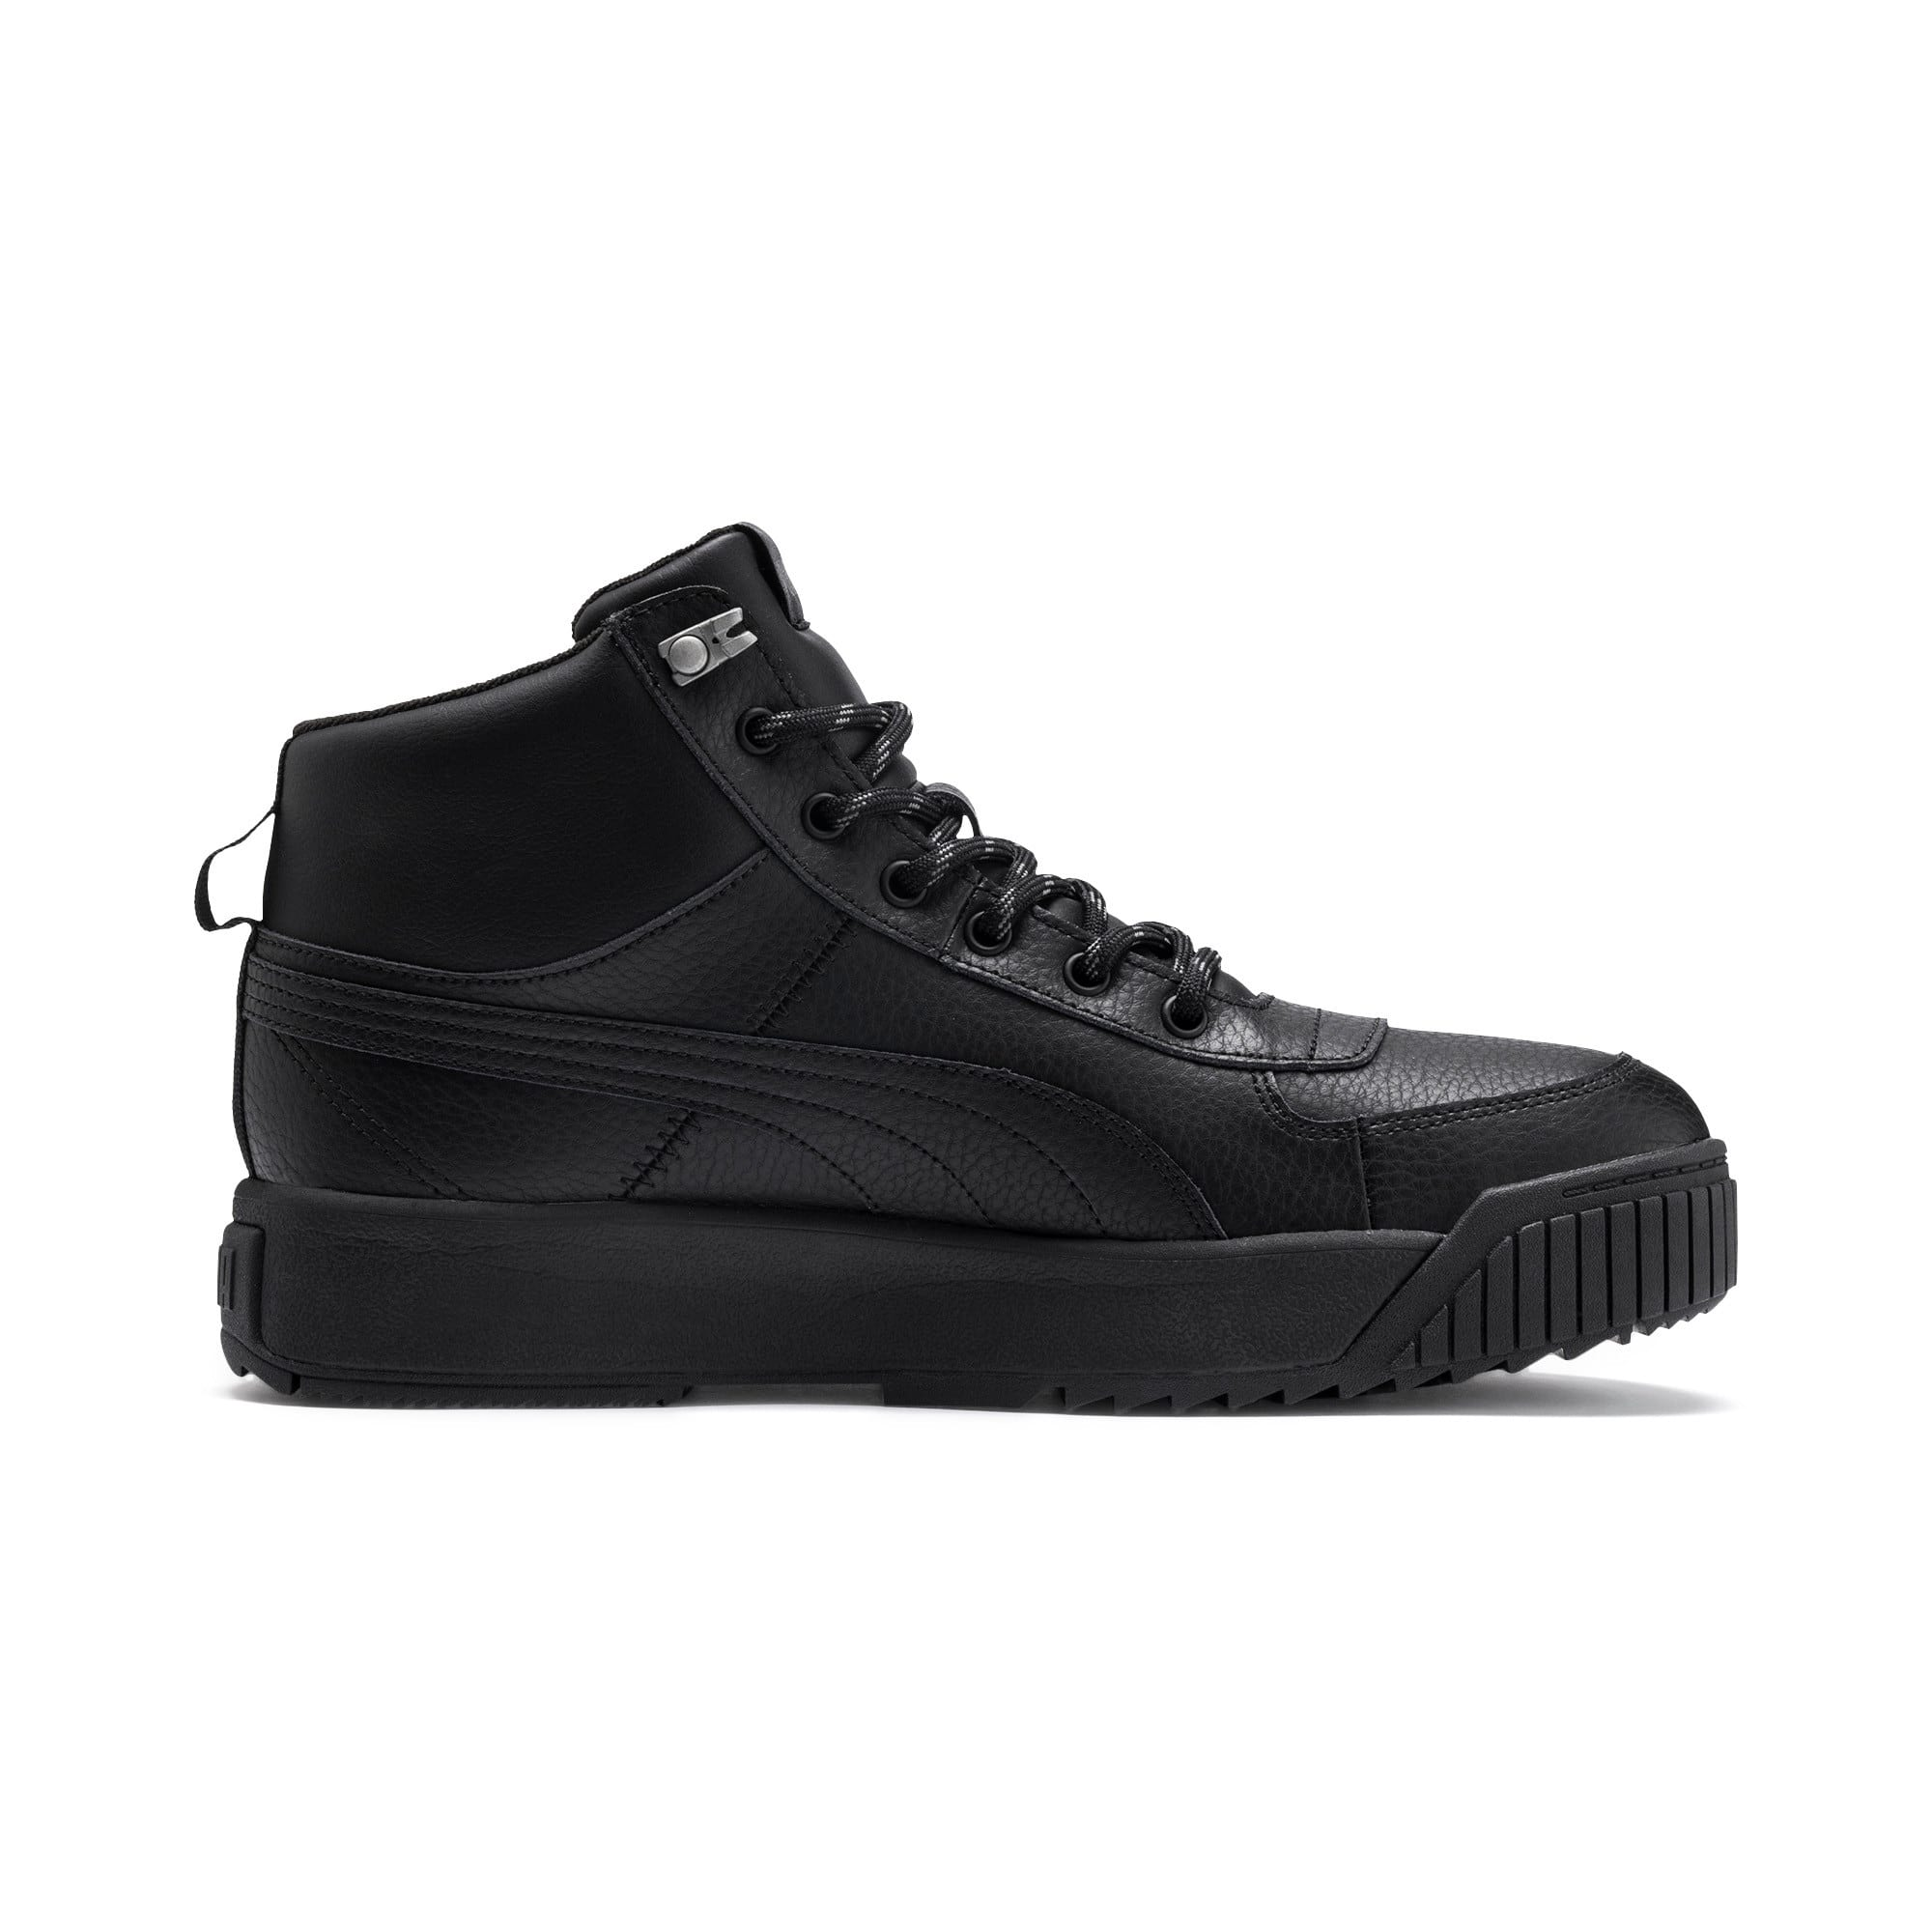 Thumbnail 6 of Tarrenz SB PURE-TEX Trainers, Puma Black-Puma Black, medium